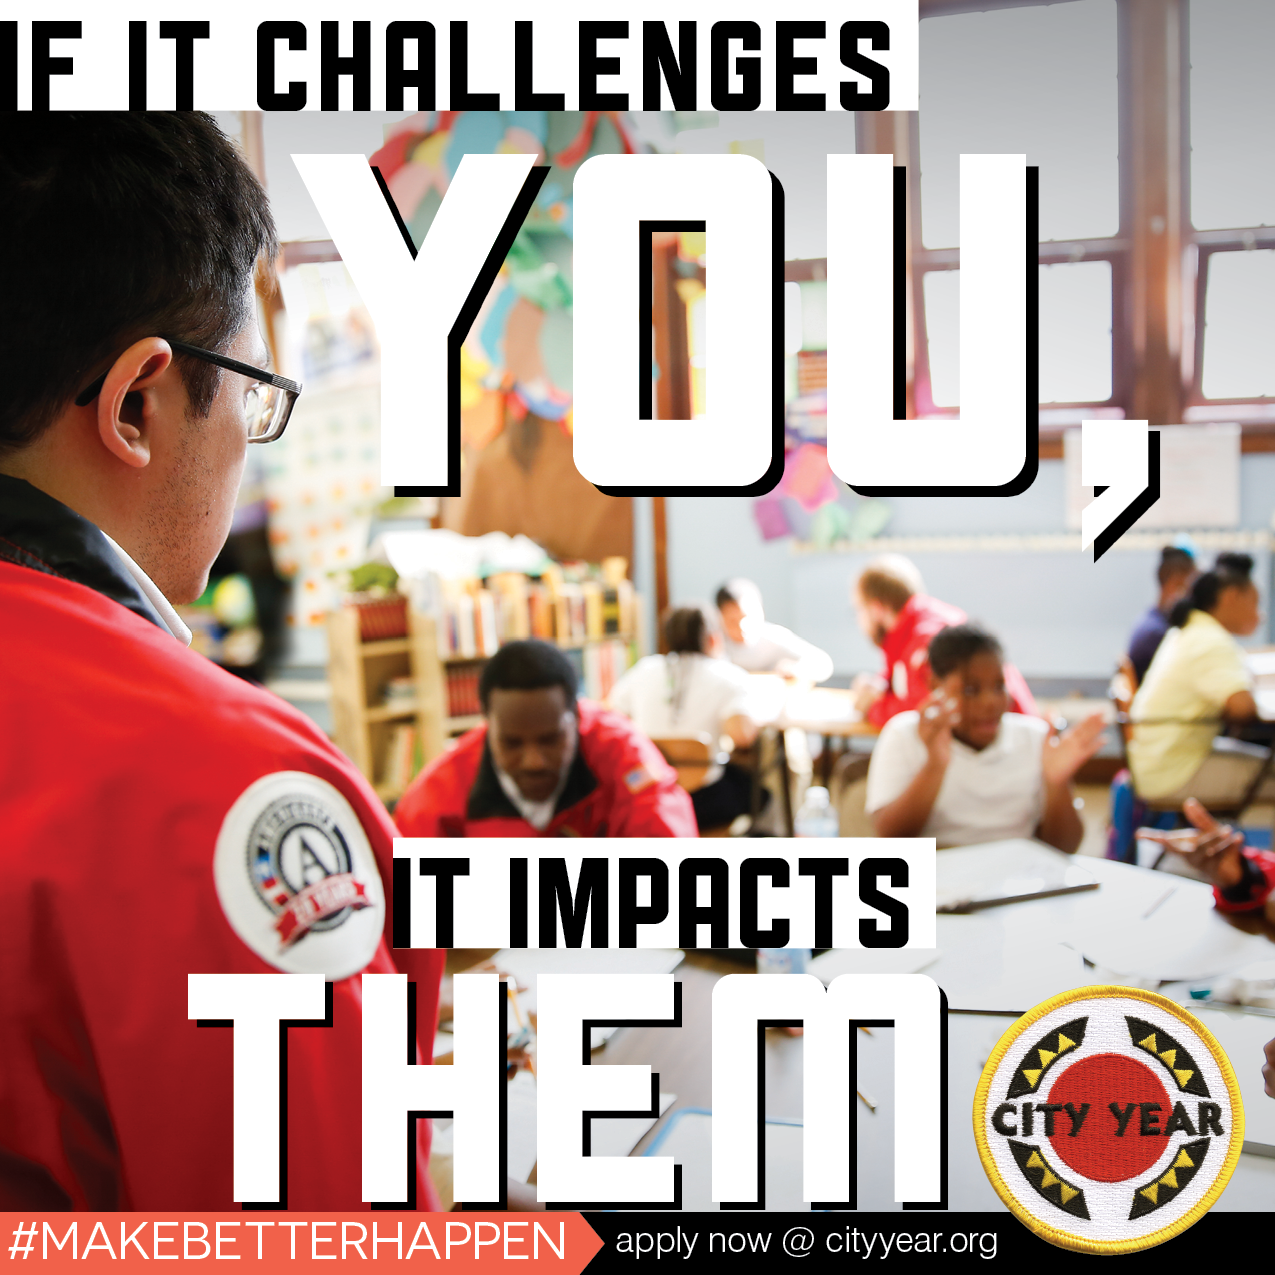 Community Service Organization - City Year: Find Purpose Not Just A Paycheck!  2